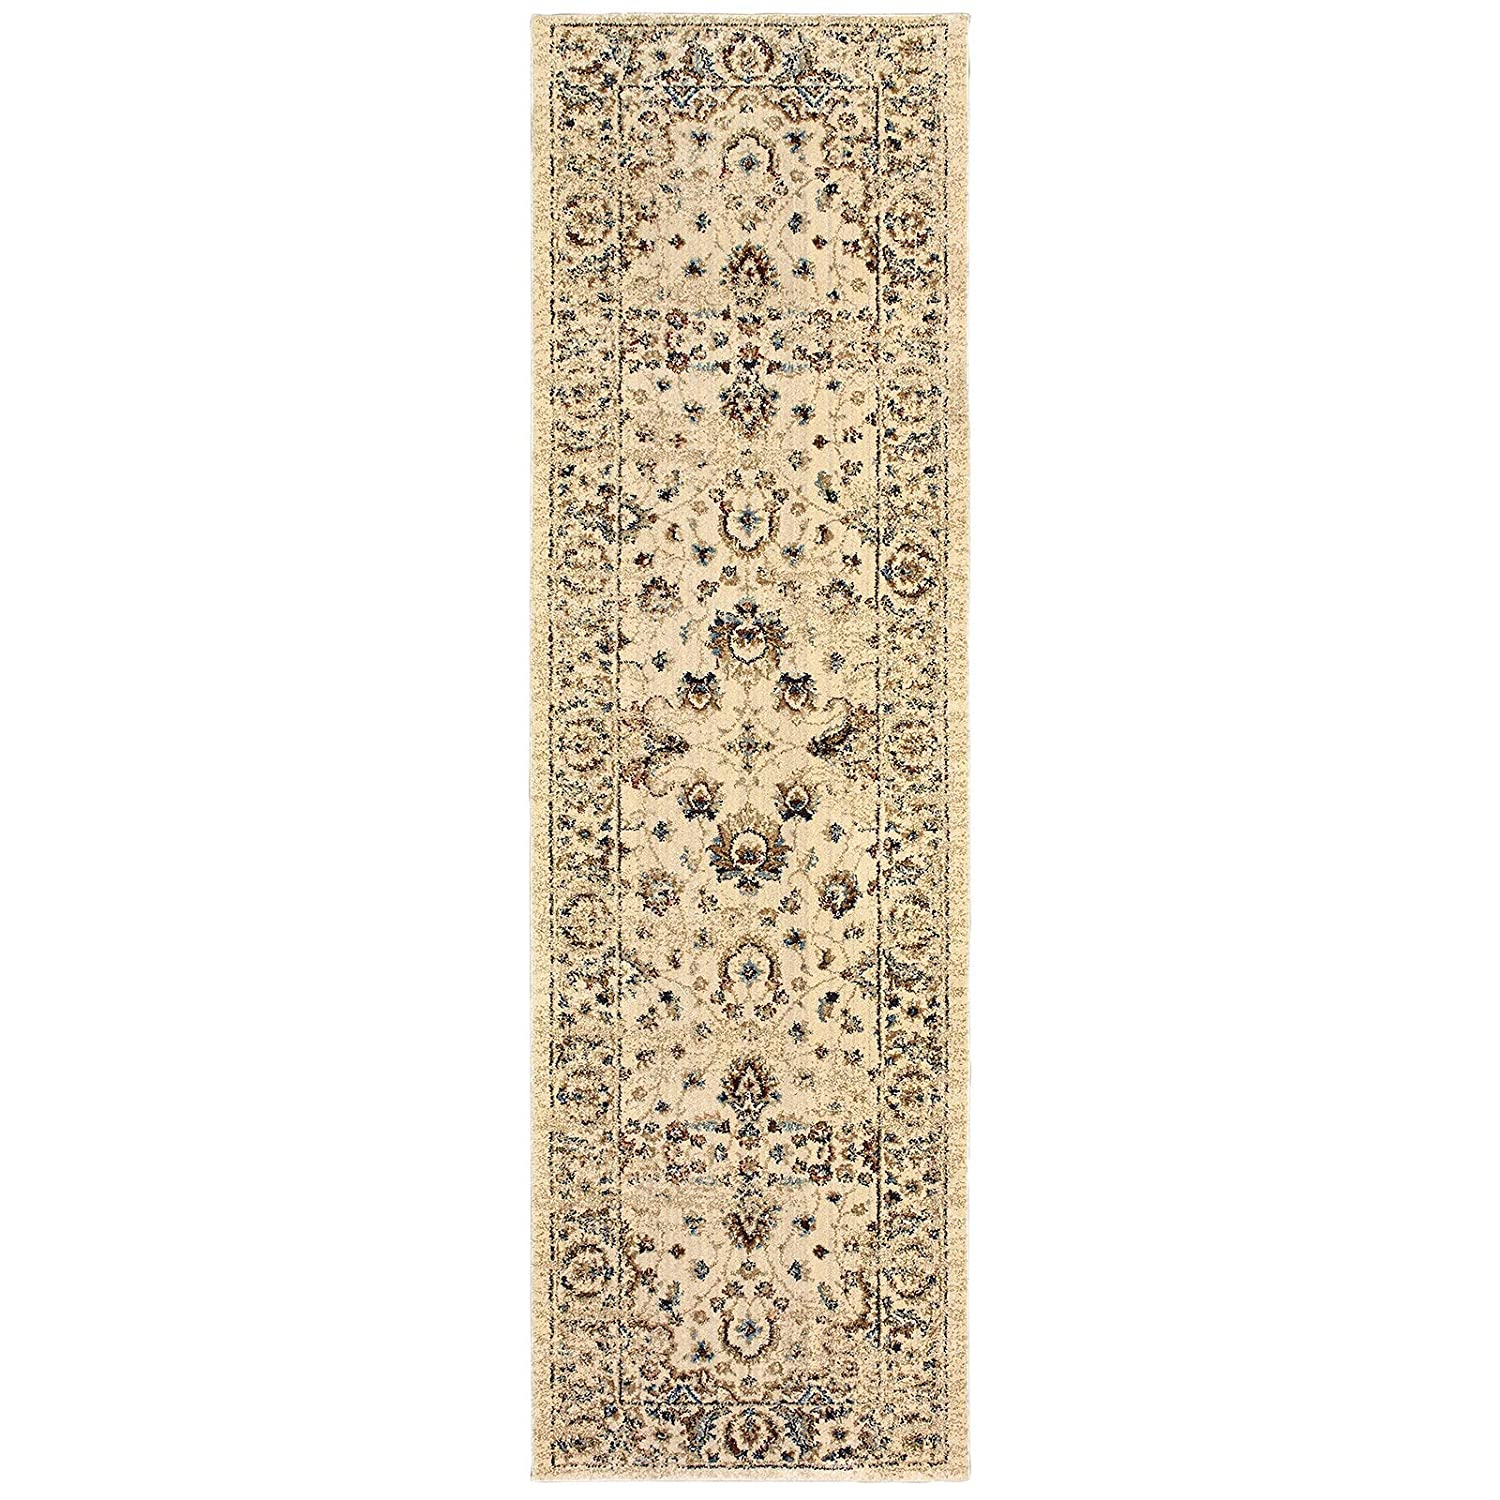 Christopher Knight Home CK-4W411 Emerald Border Indoor Runner 2ft 3in X 7ft 6in Ivory Gold